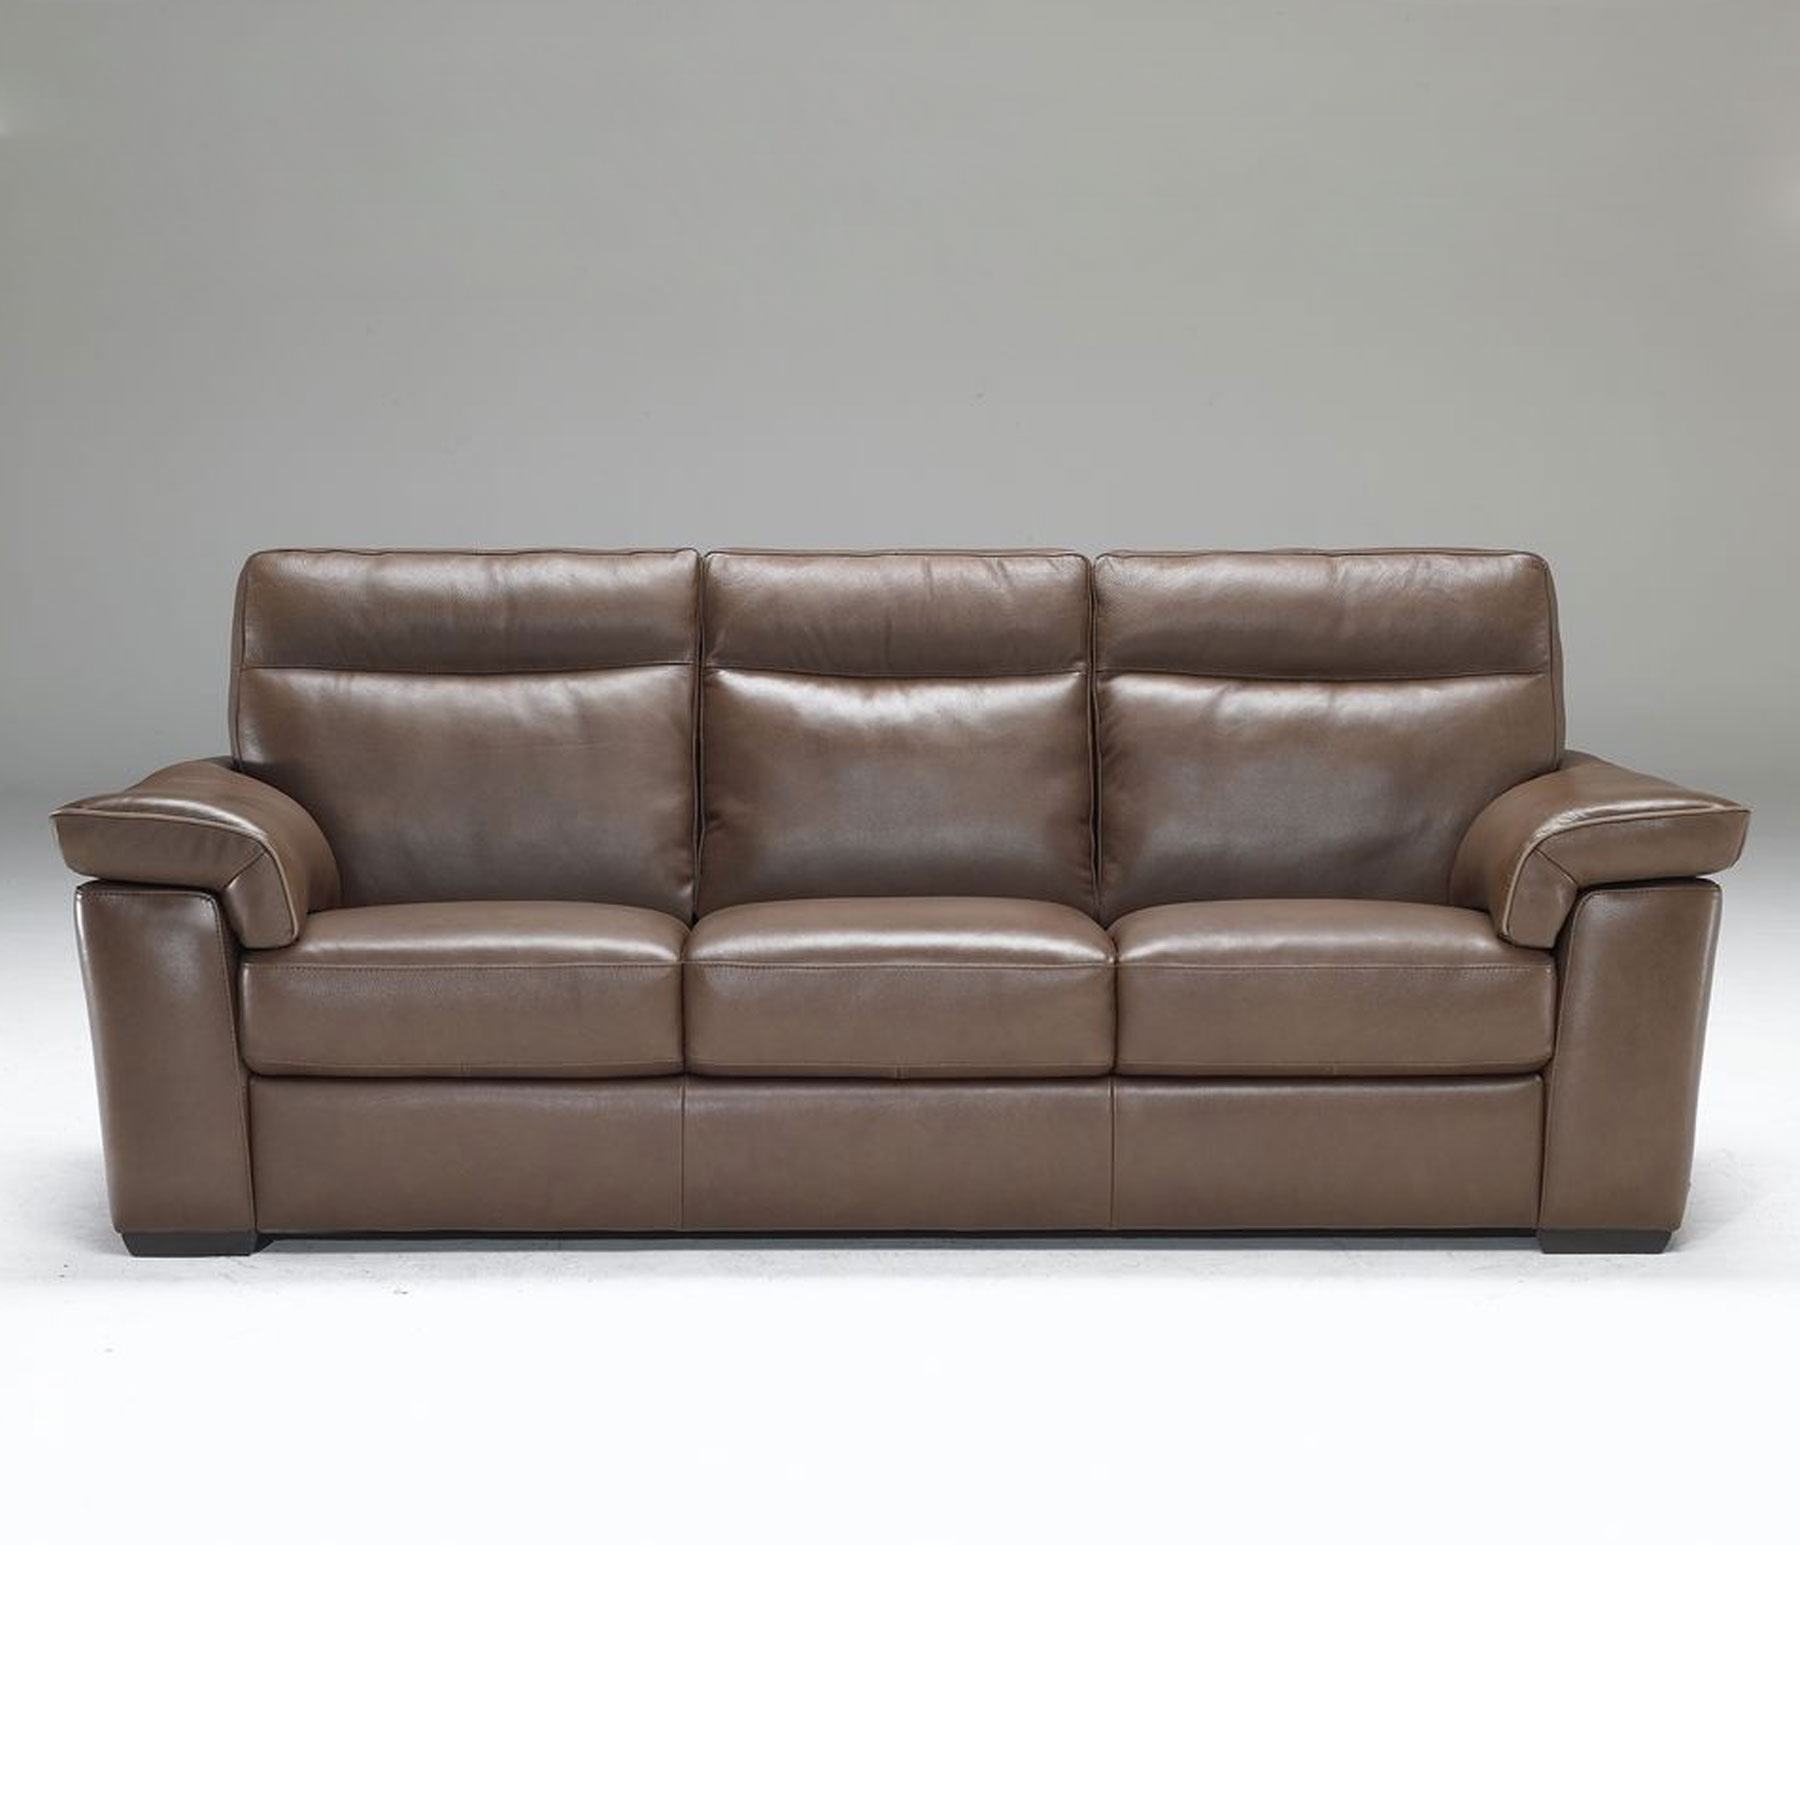 Picture of: Natuzzi Editions Brivido Leather Recliner Sofa Chair Ottoman Collection